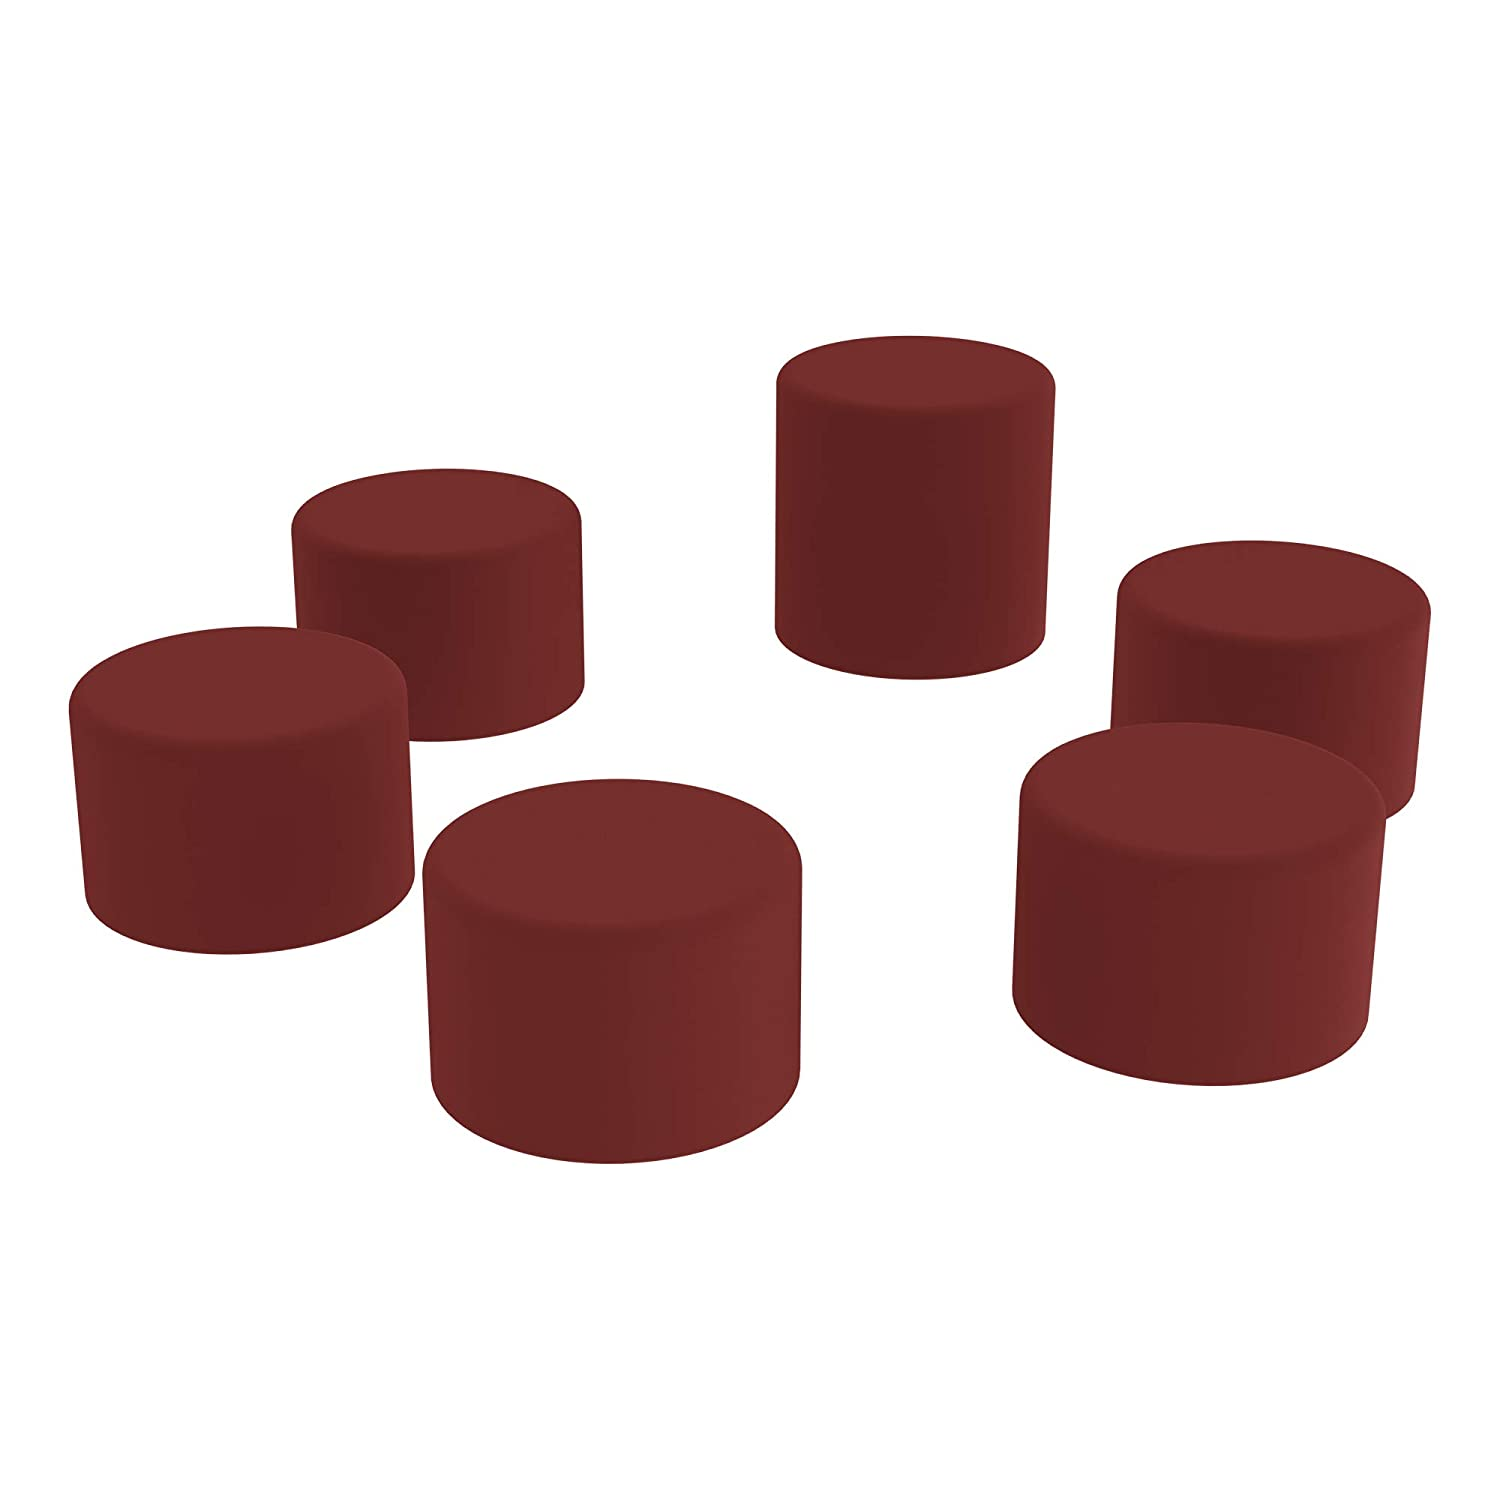 18 H Black Learniture Shapes Series II Vinyl Soft Seating Stool Cylinder